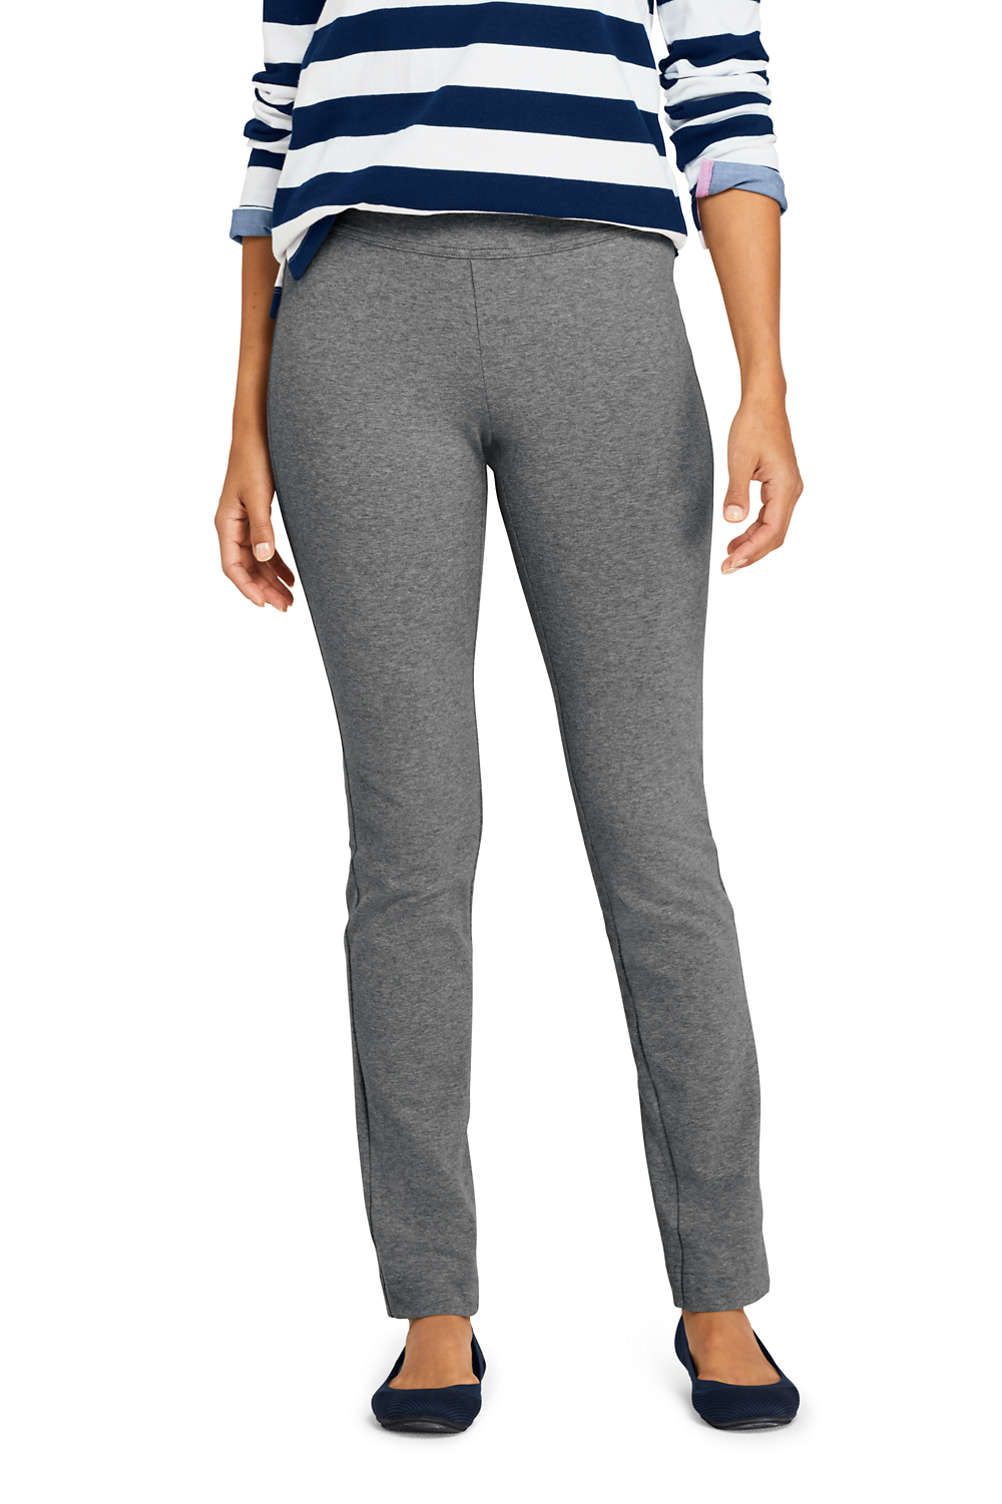 c1d296b7015b0 Women's Starfish Mid Rise Slim Leg Elastic Waist Pull On Pants from Lands'  End